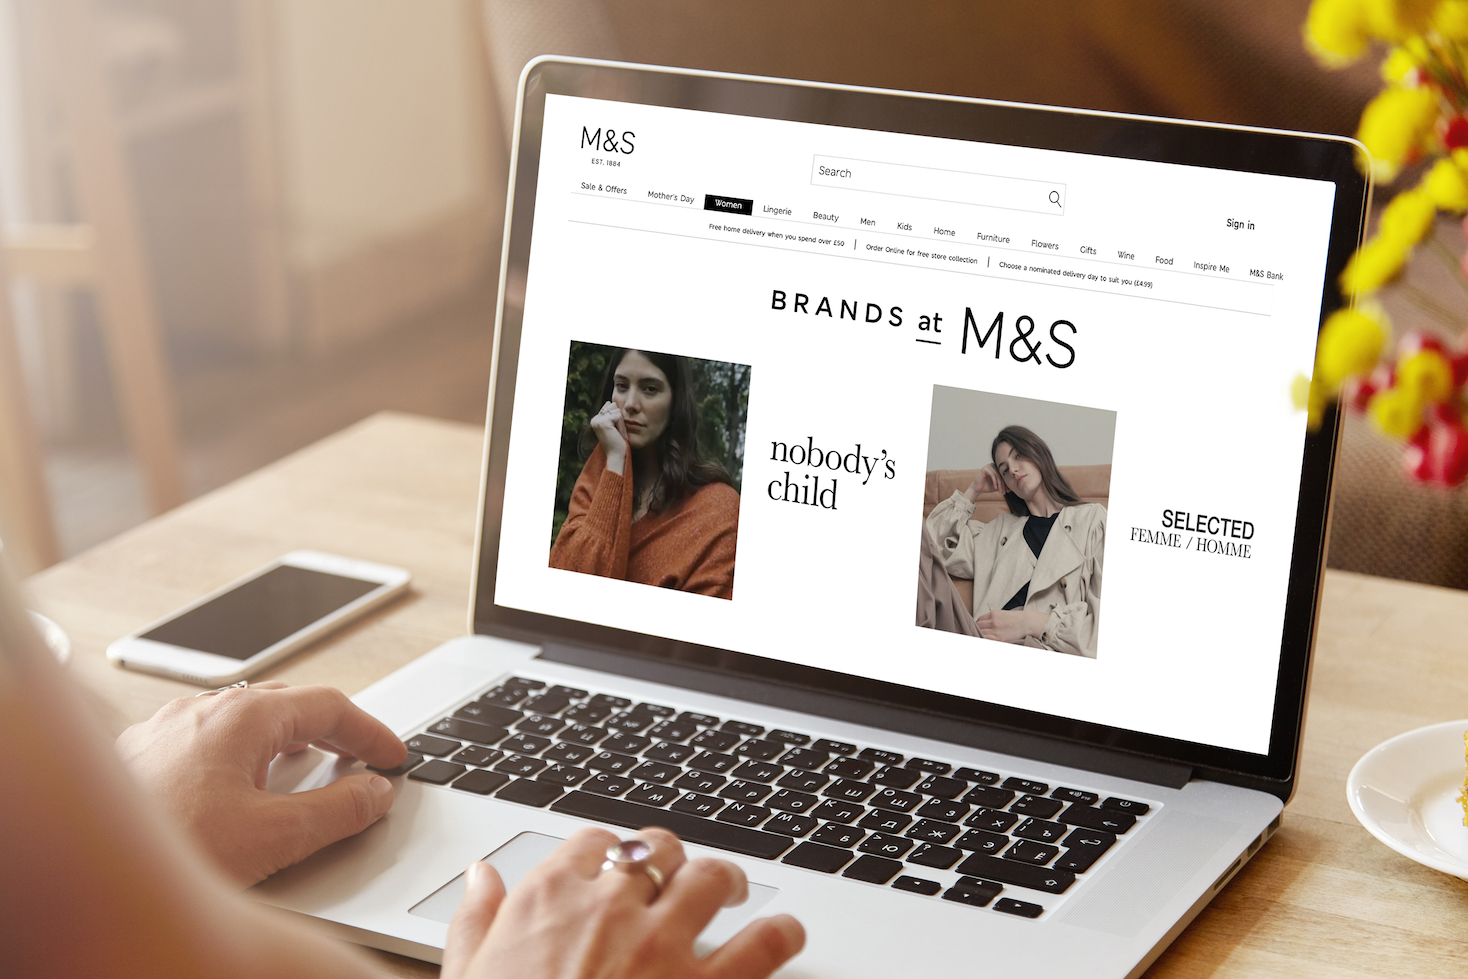 While Asos and Boohoo drive buzz in U.K. retail, a Wunderman Thompson Commerce report says Next and M+S excel at e-commerce experiences.